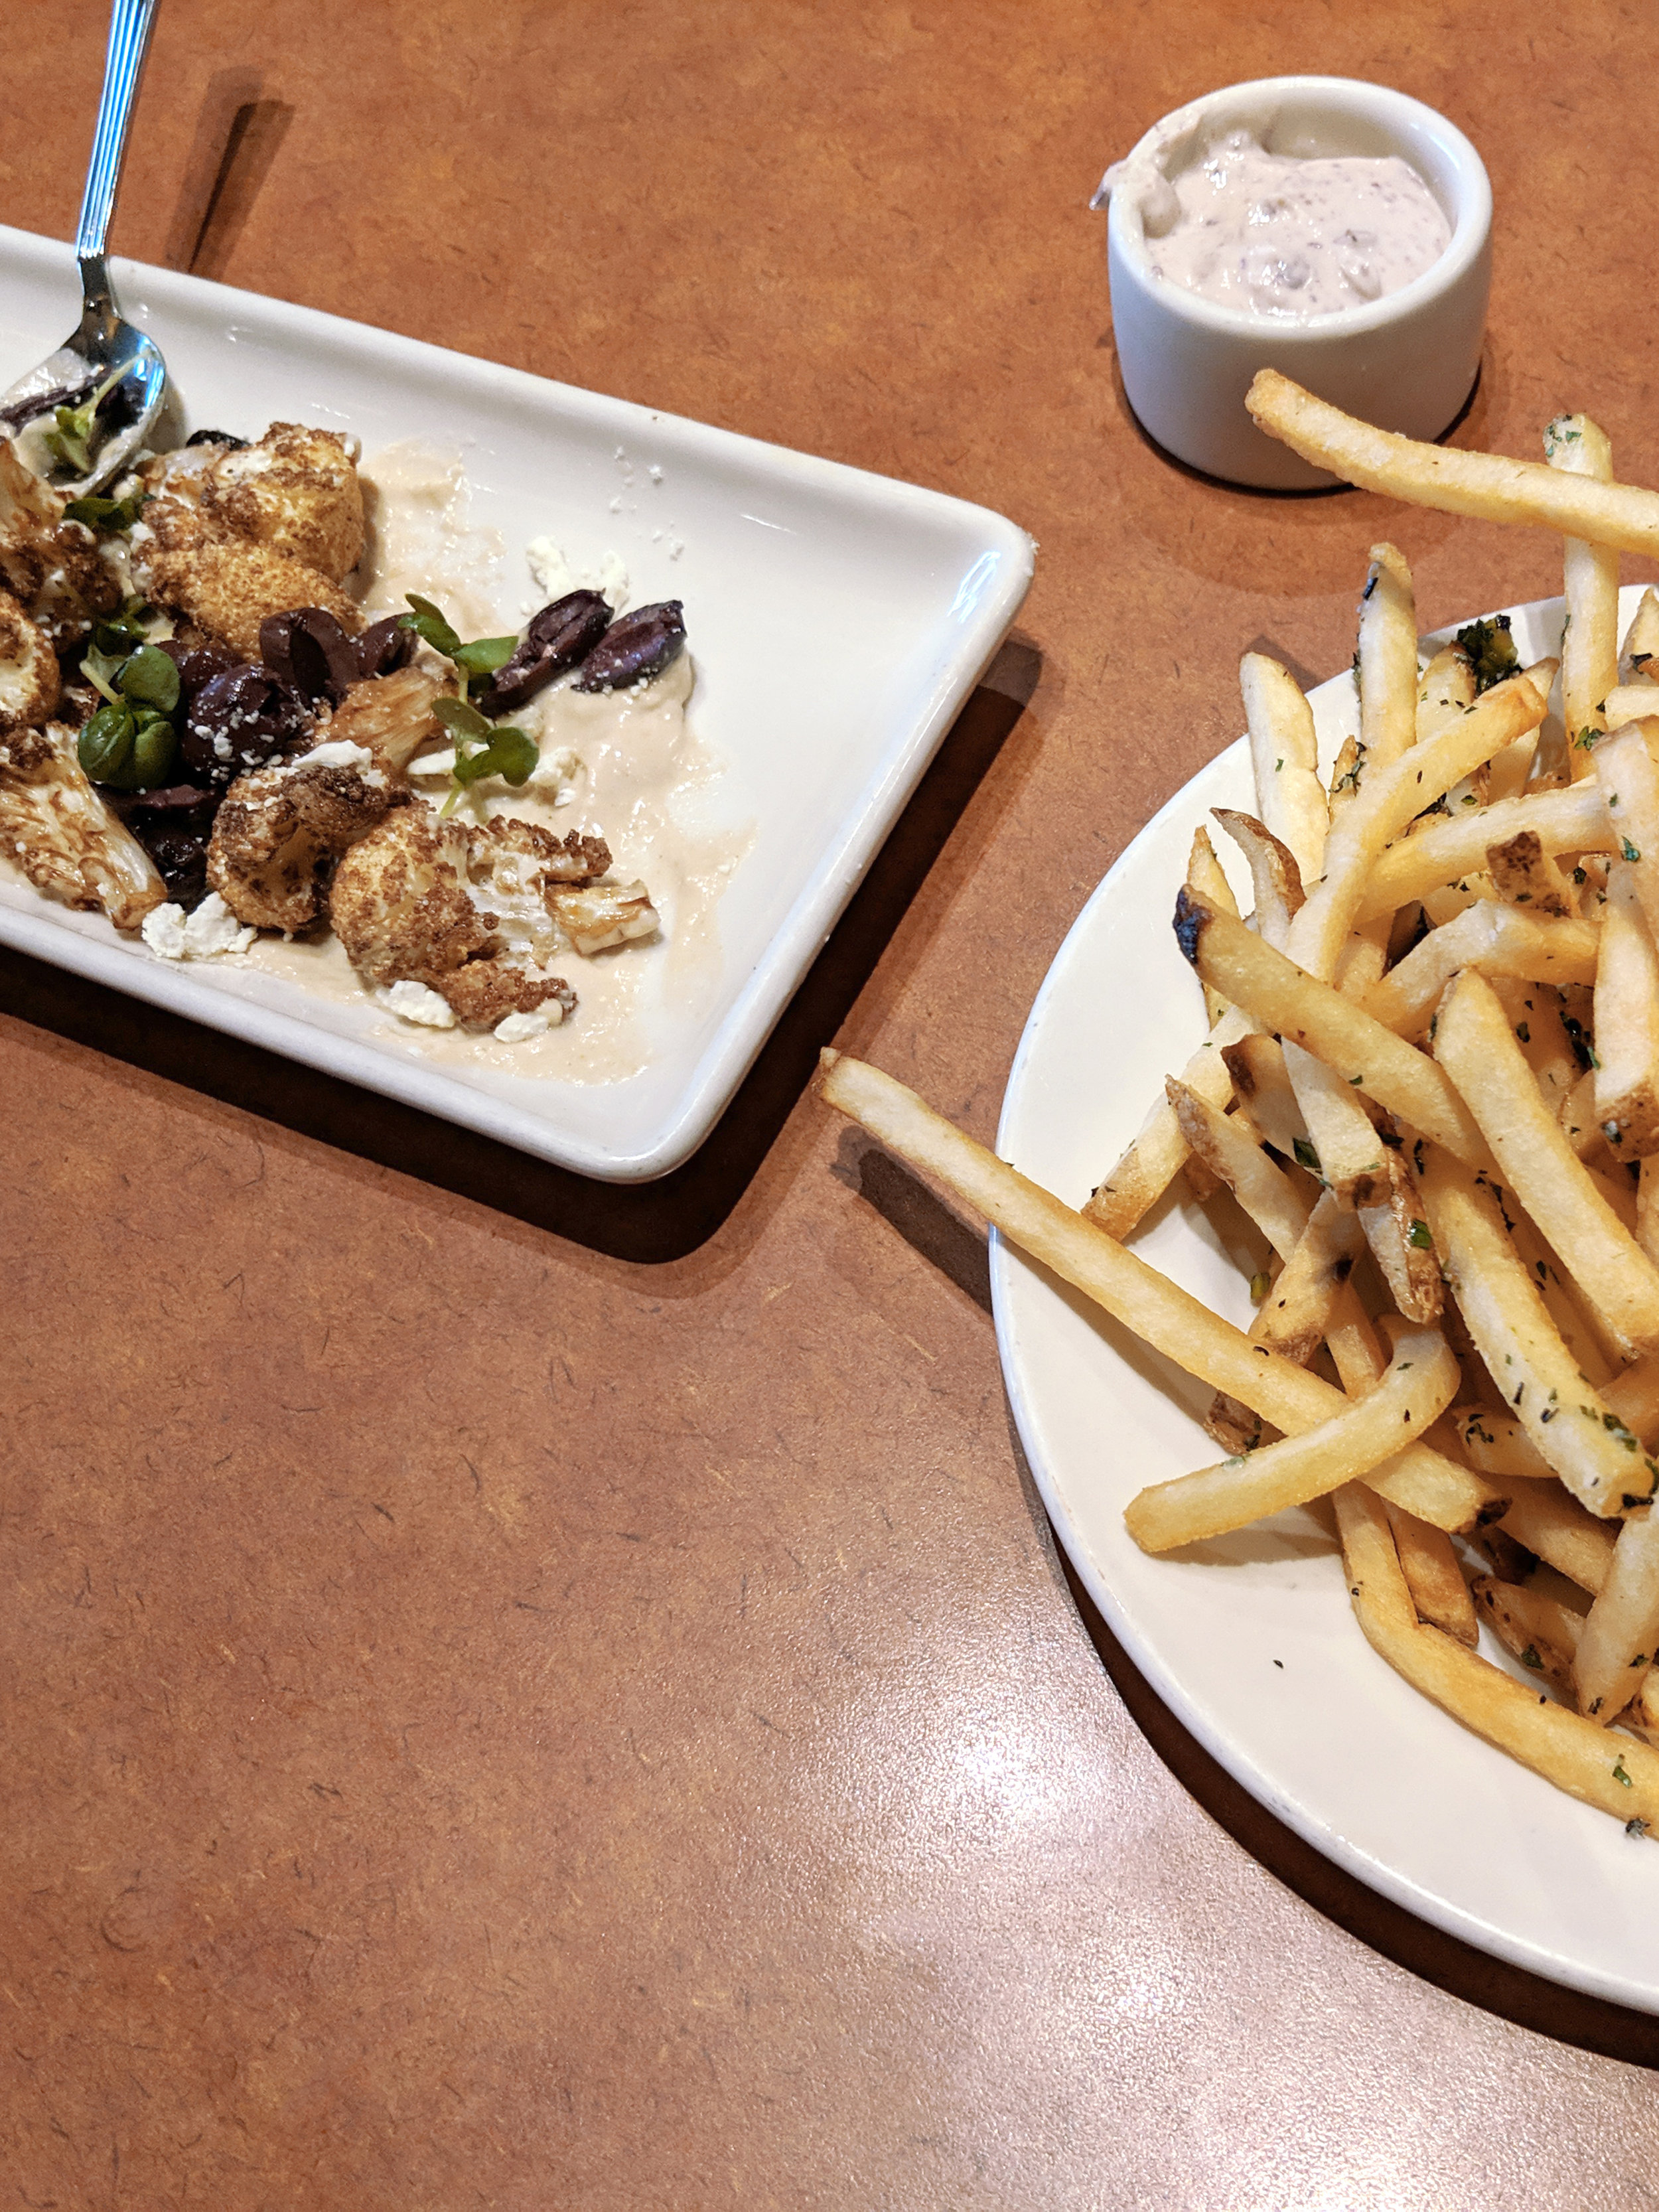 Crispy Cauliflower from Nordstom's on a long white plate with olives and tahini sauce. Kalamata Olive Aioli and french fries.